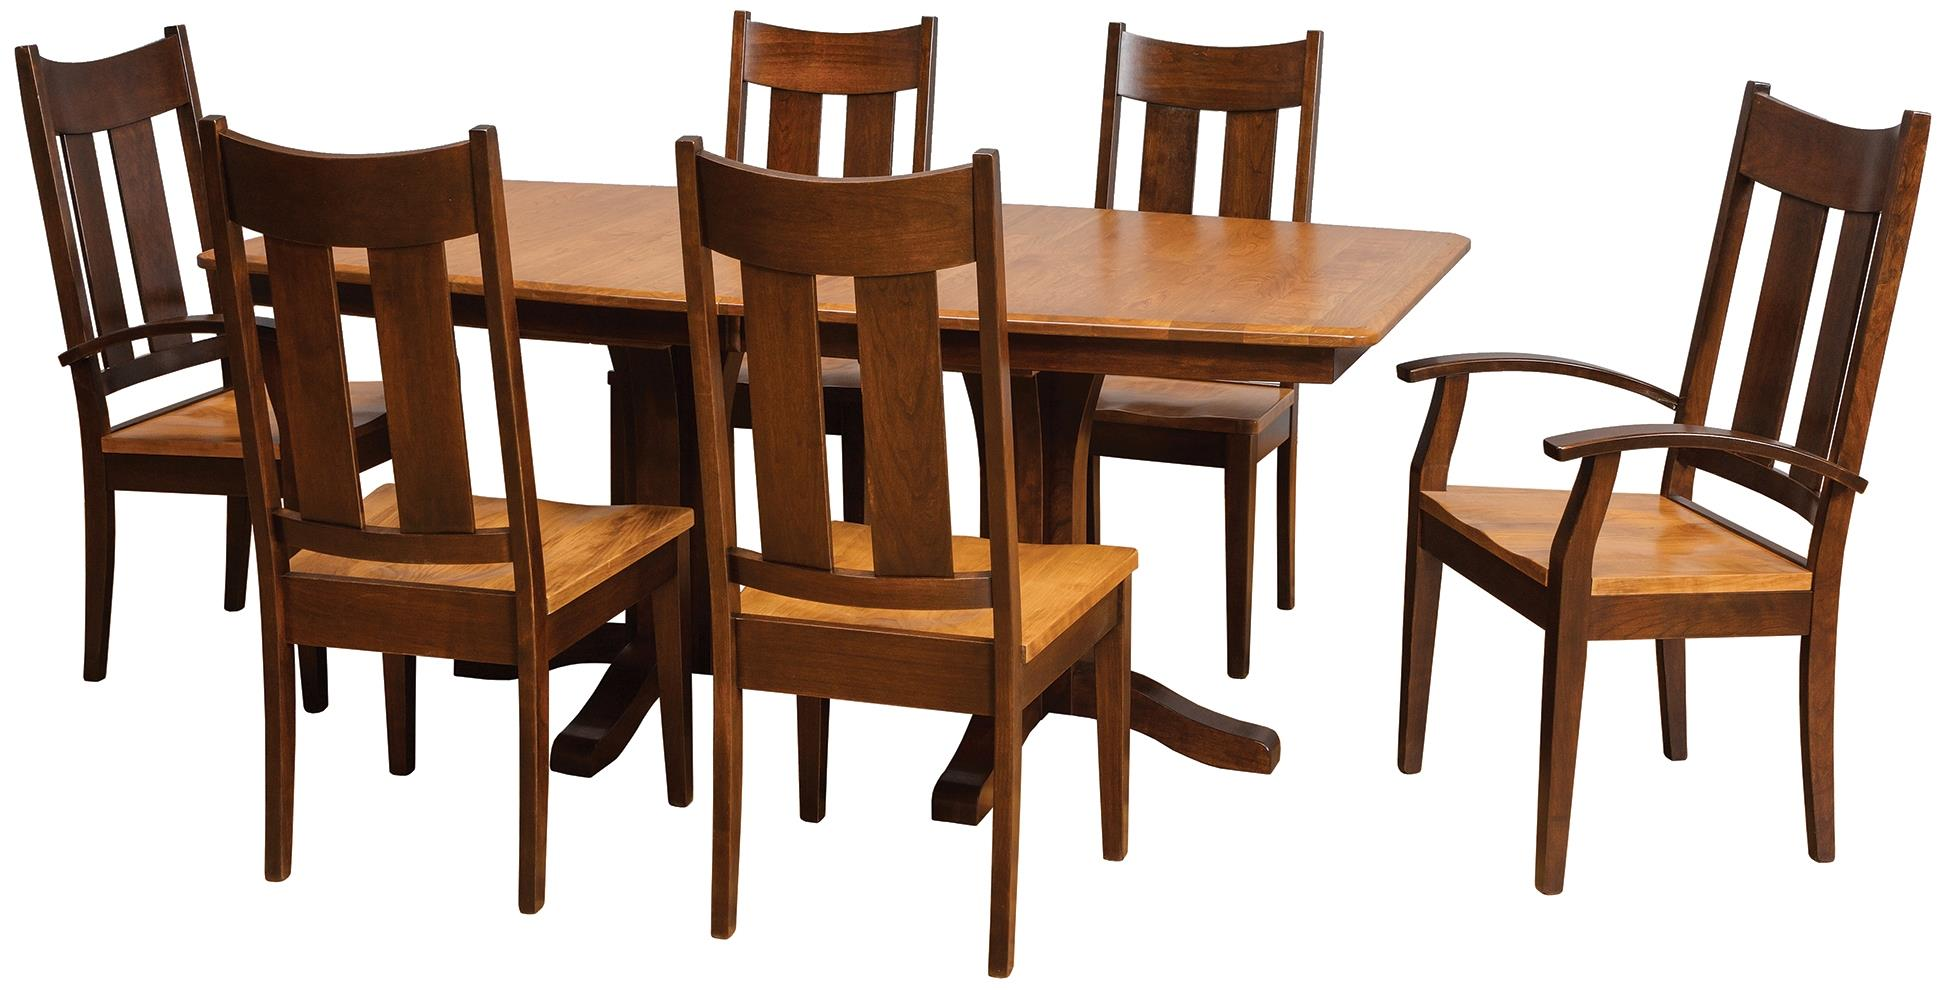 Daniel 39 s amish chairs and barstools tampa arm chair h l for H furniture ww chair